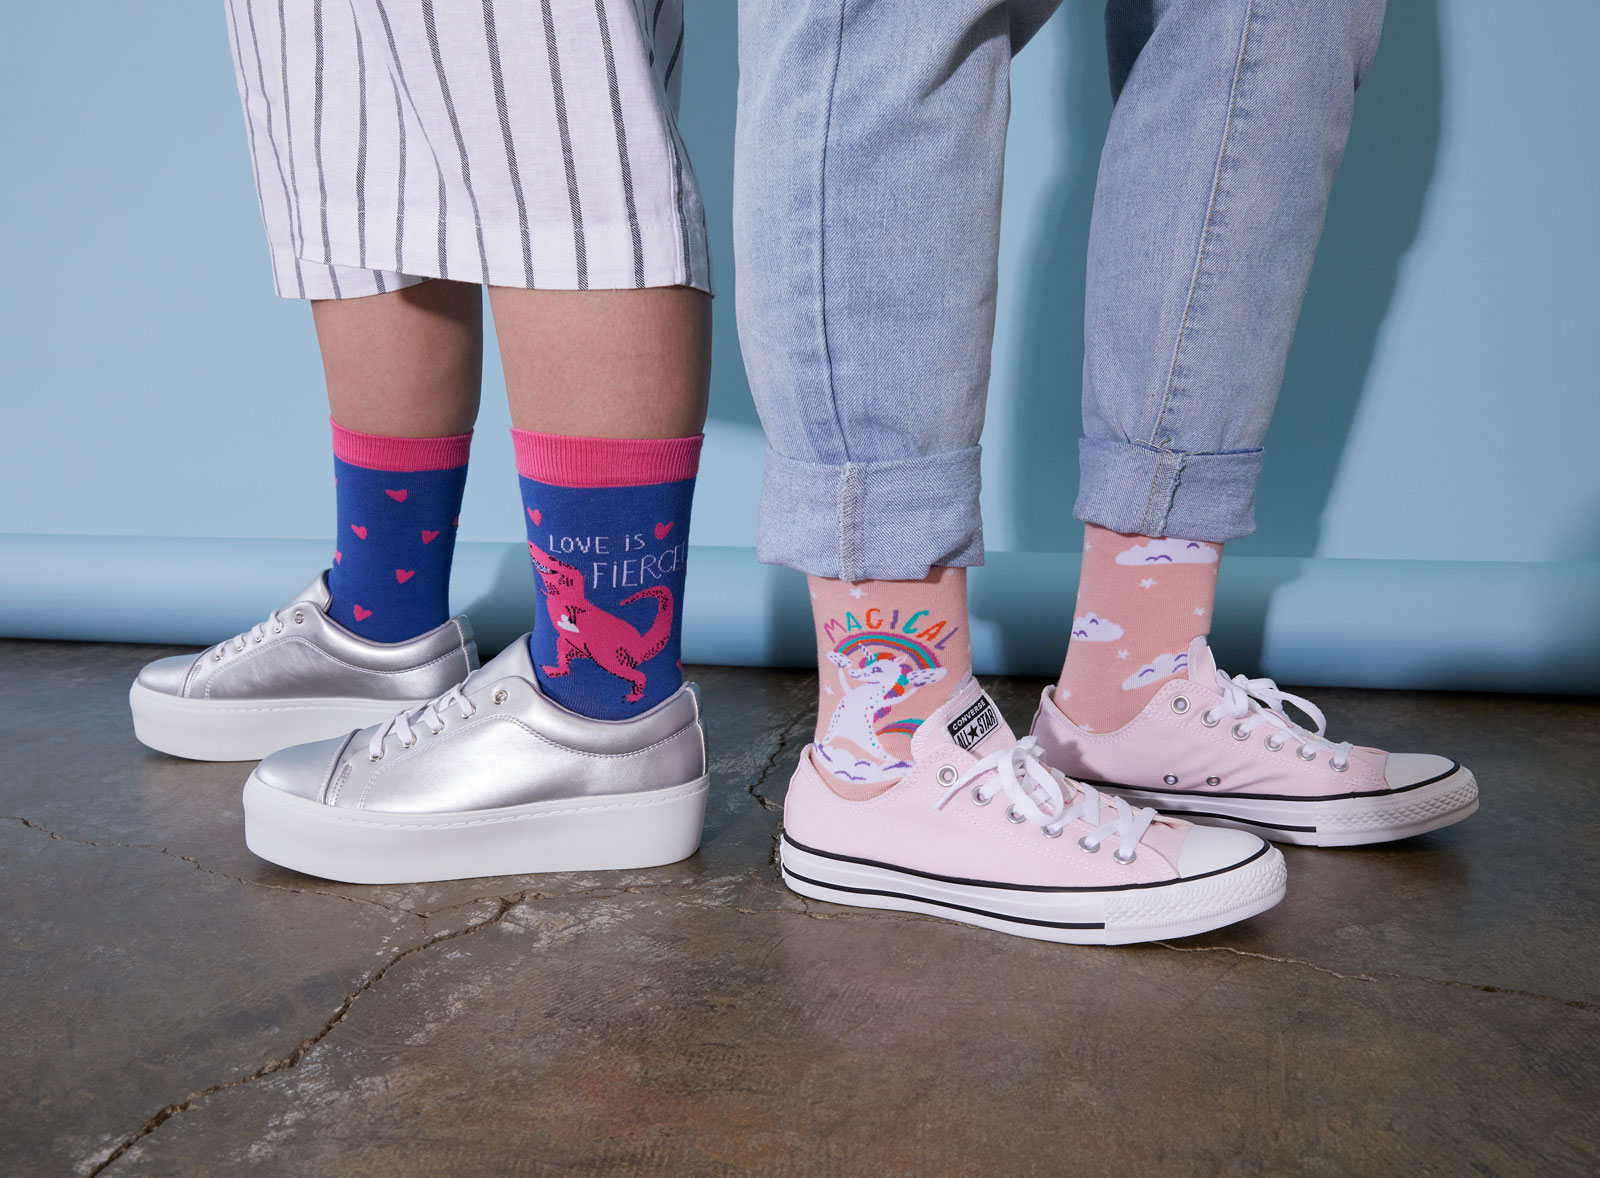 two pairs of socks made in collaboration with hello!lucky